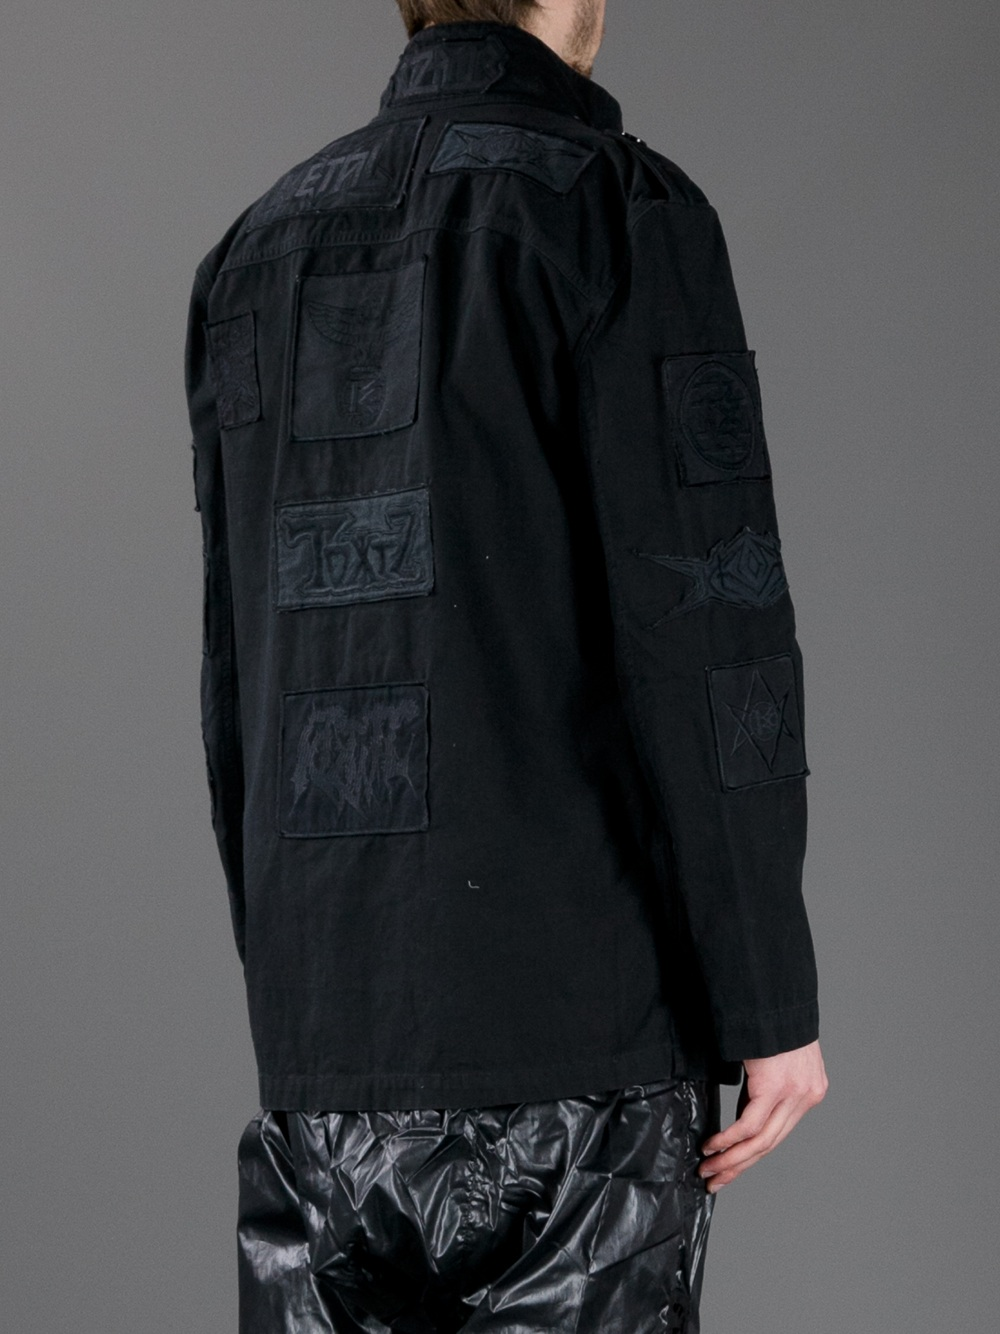 KTZ Solid Embroidered Patch Jacket in Black for Men